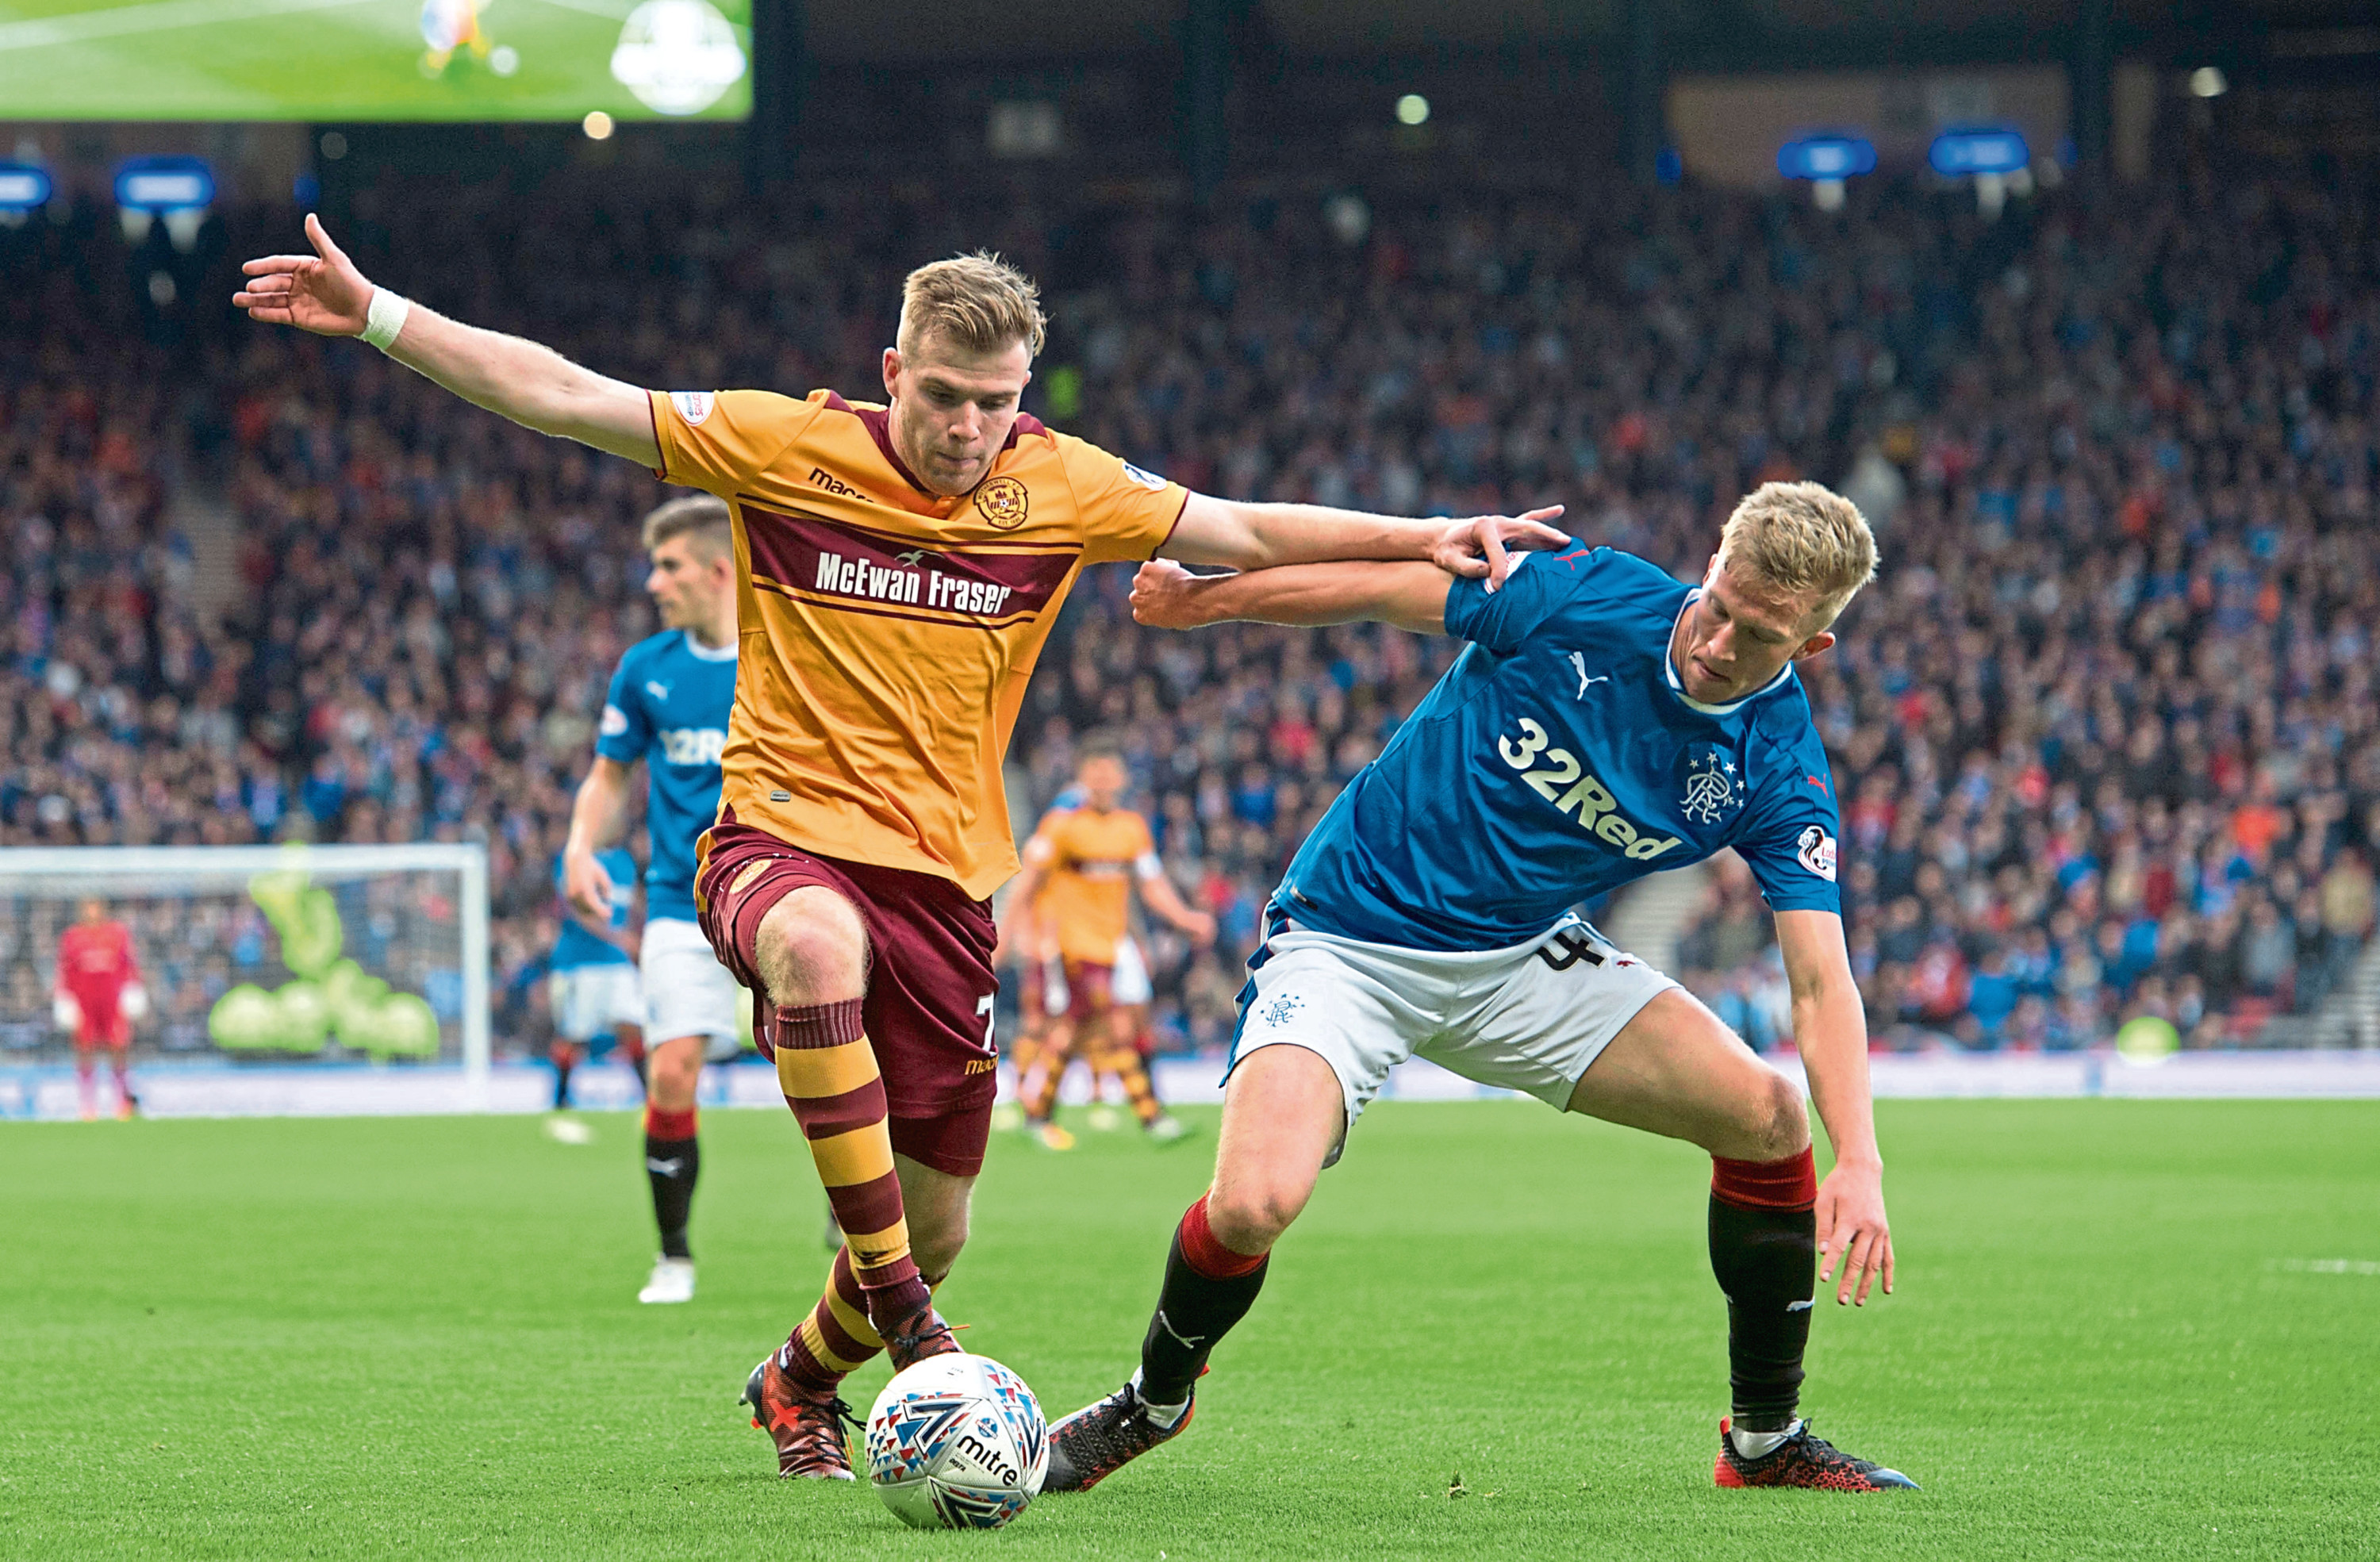 Rangers' Ross McCrorie in action at Hampden (SNS Group)